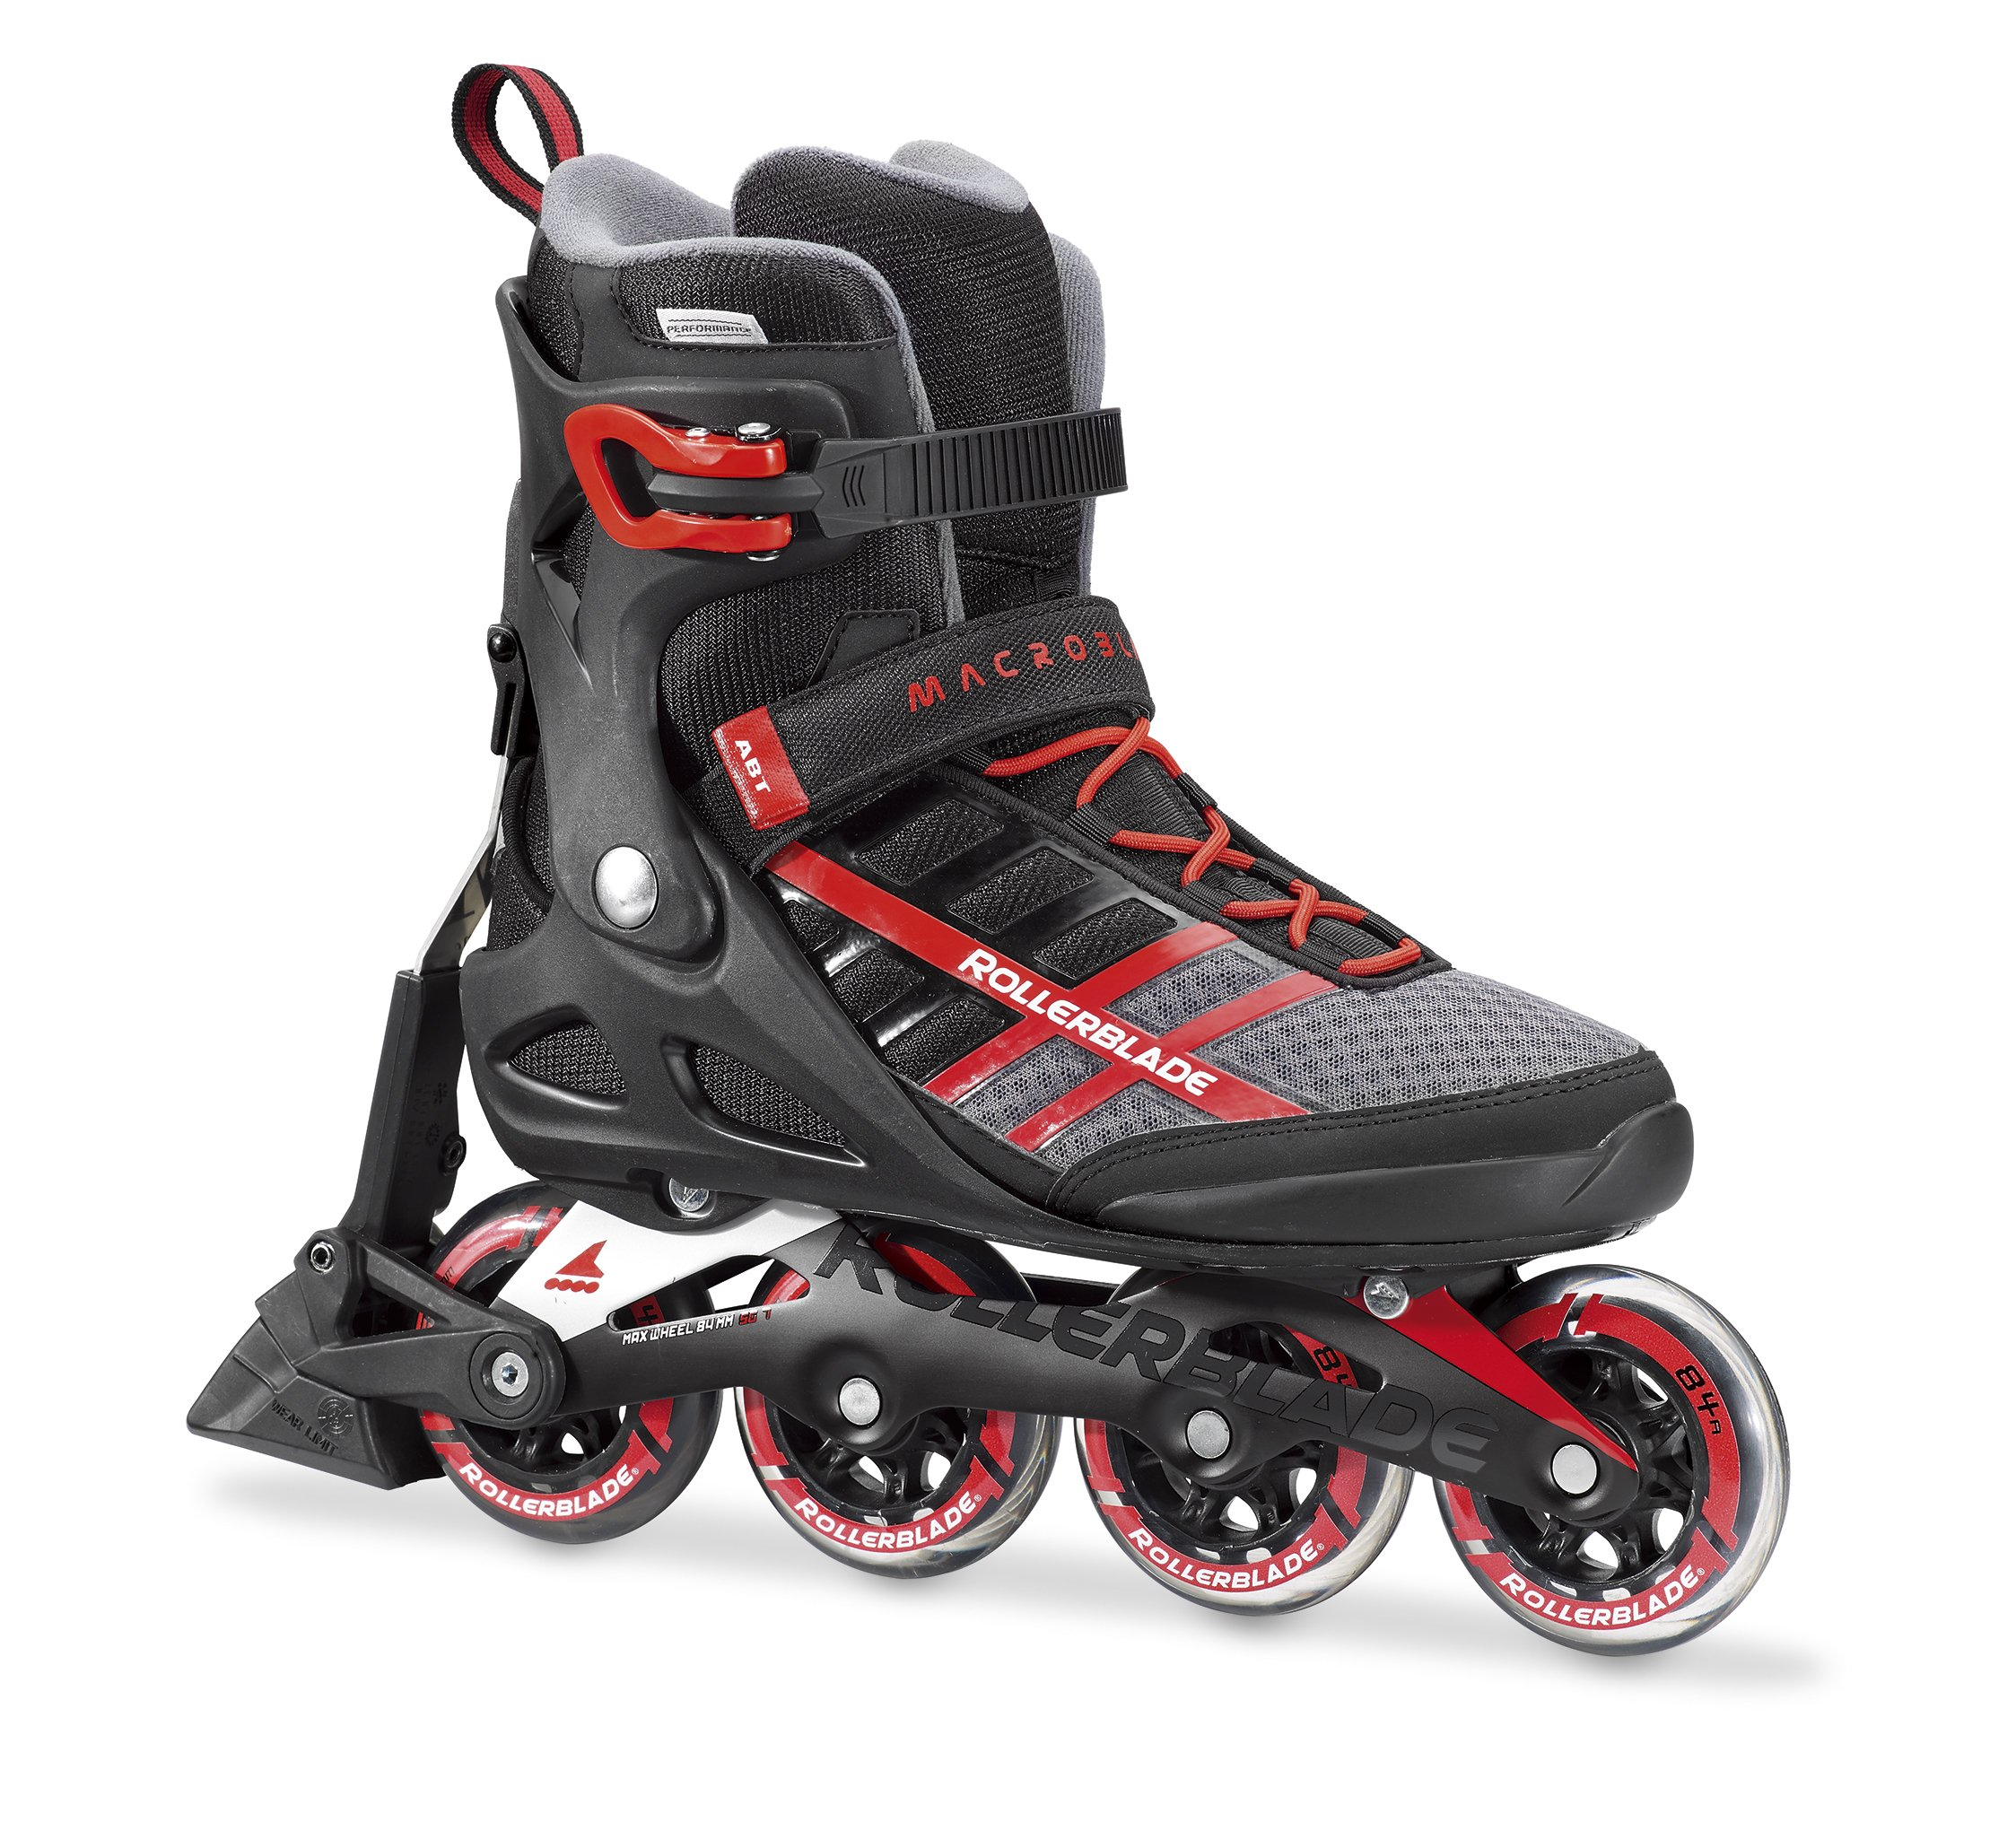 Rollerblade Macroblade 84 ABT Men's Adult Fitness Inline Skate, Black and Red, Performance Inline Skates, US size 12